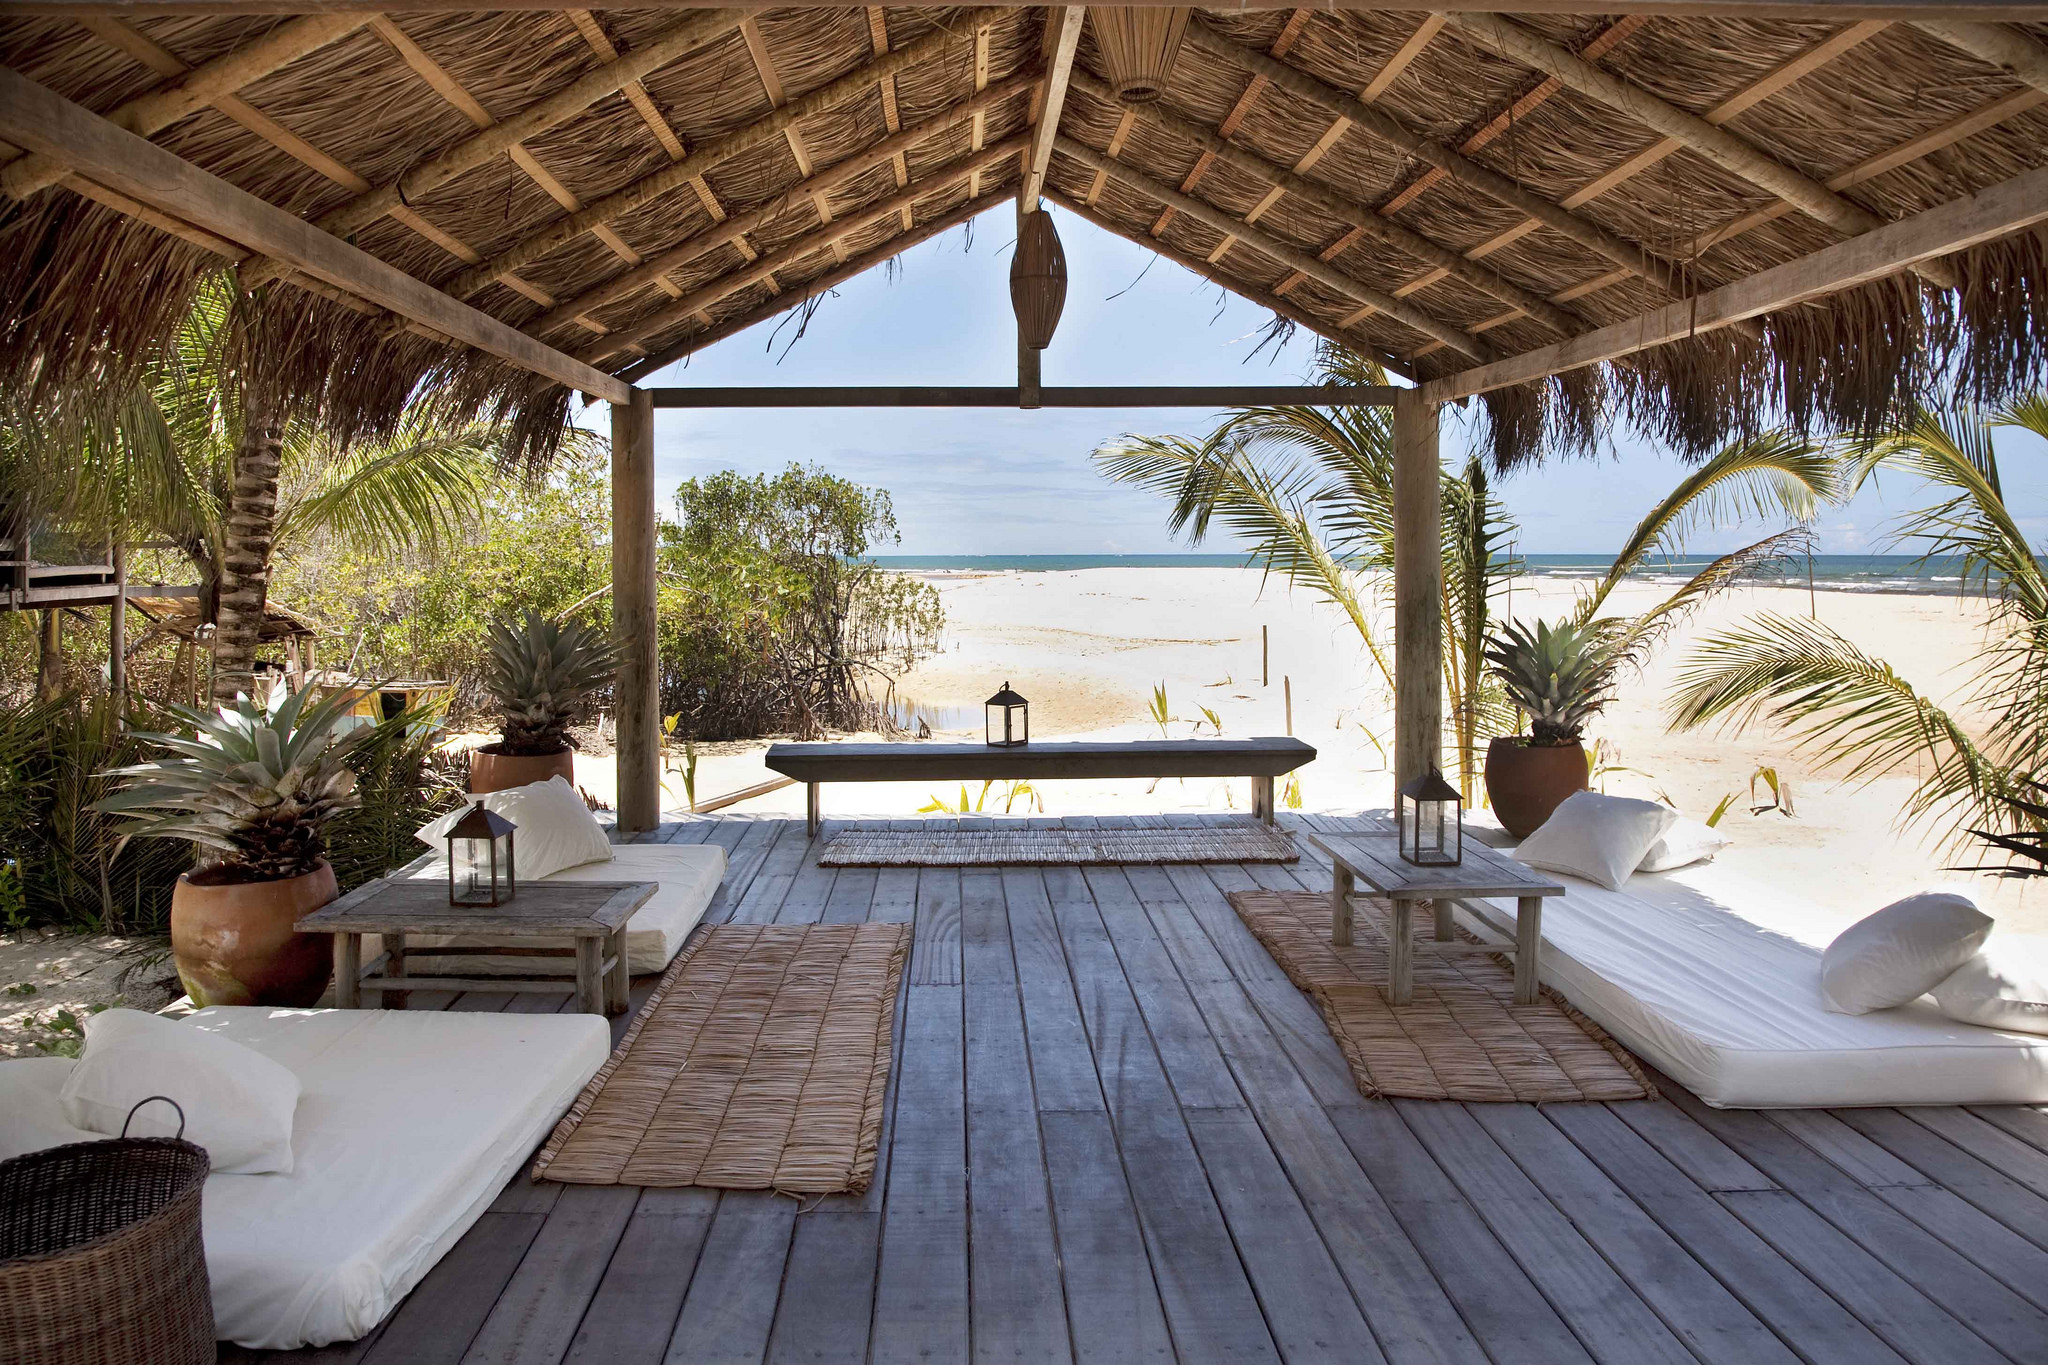 Uxua Casa Hotel and Spa, Trancoso